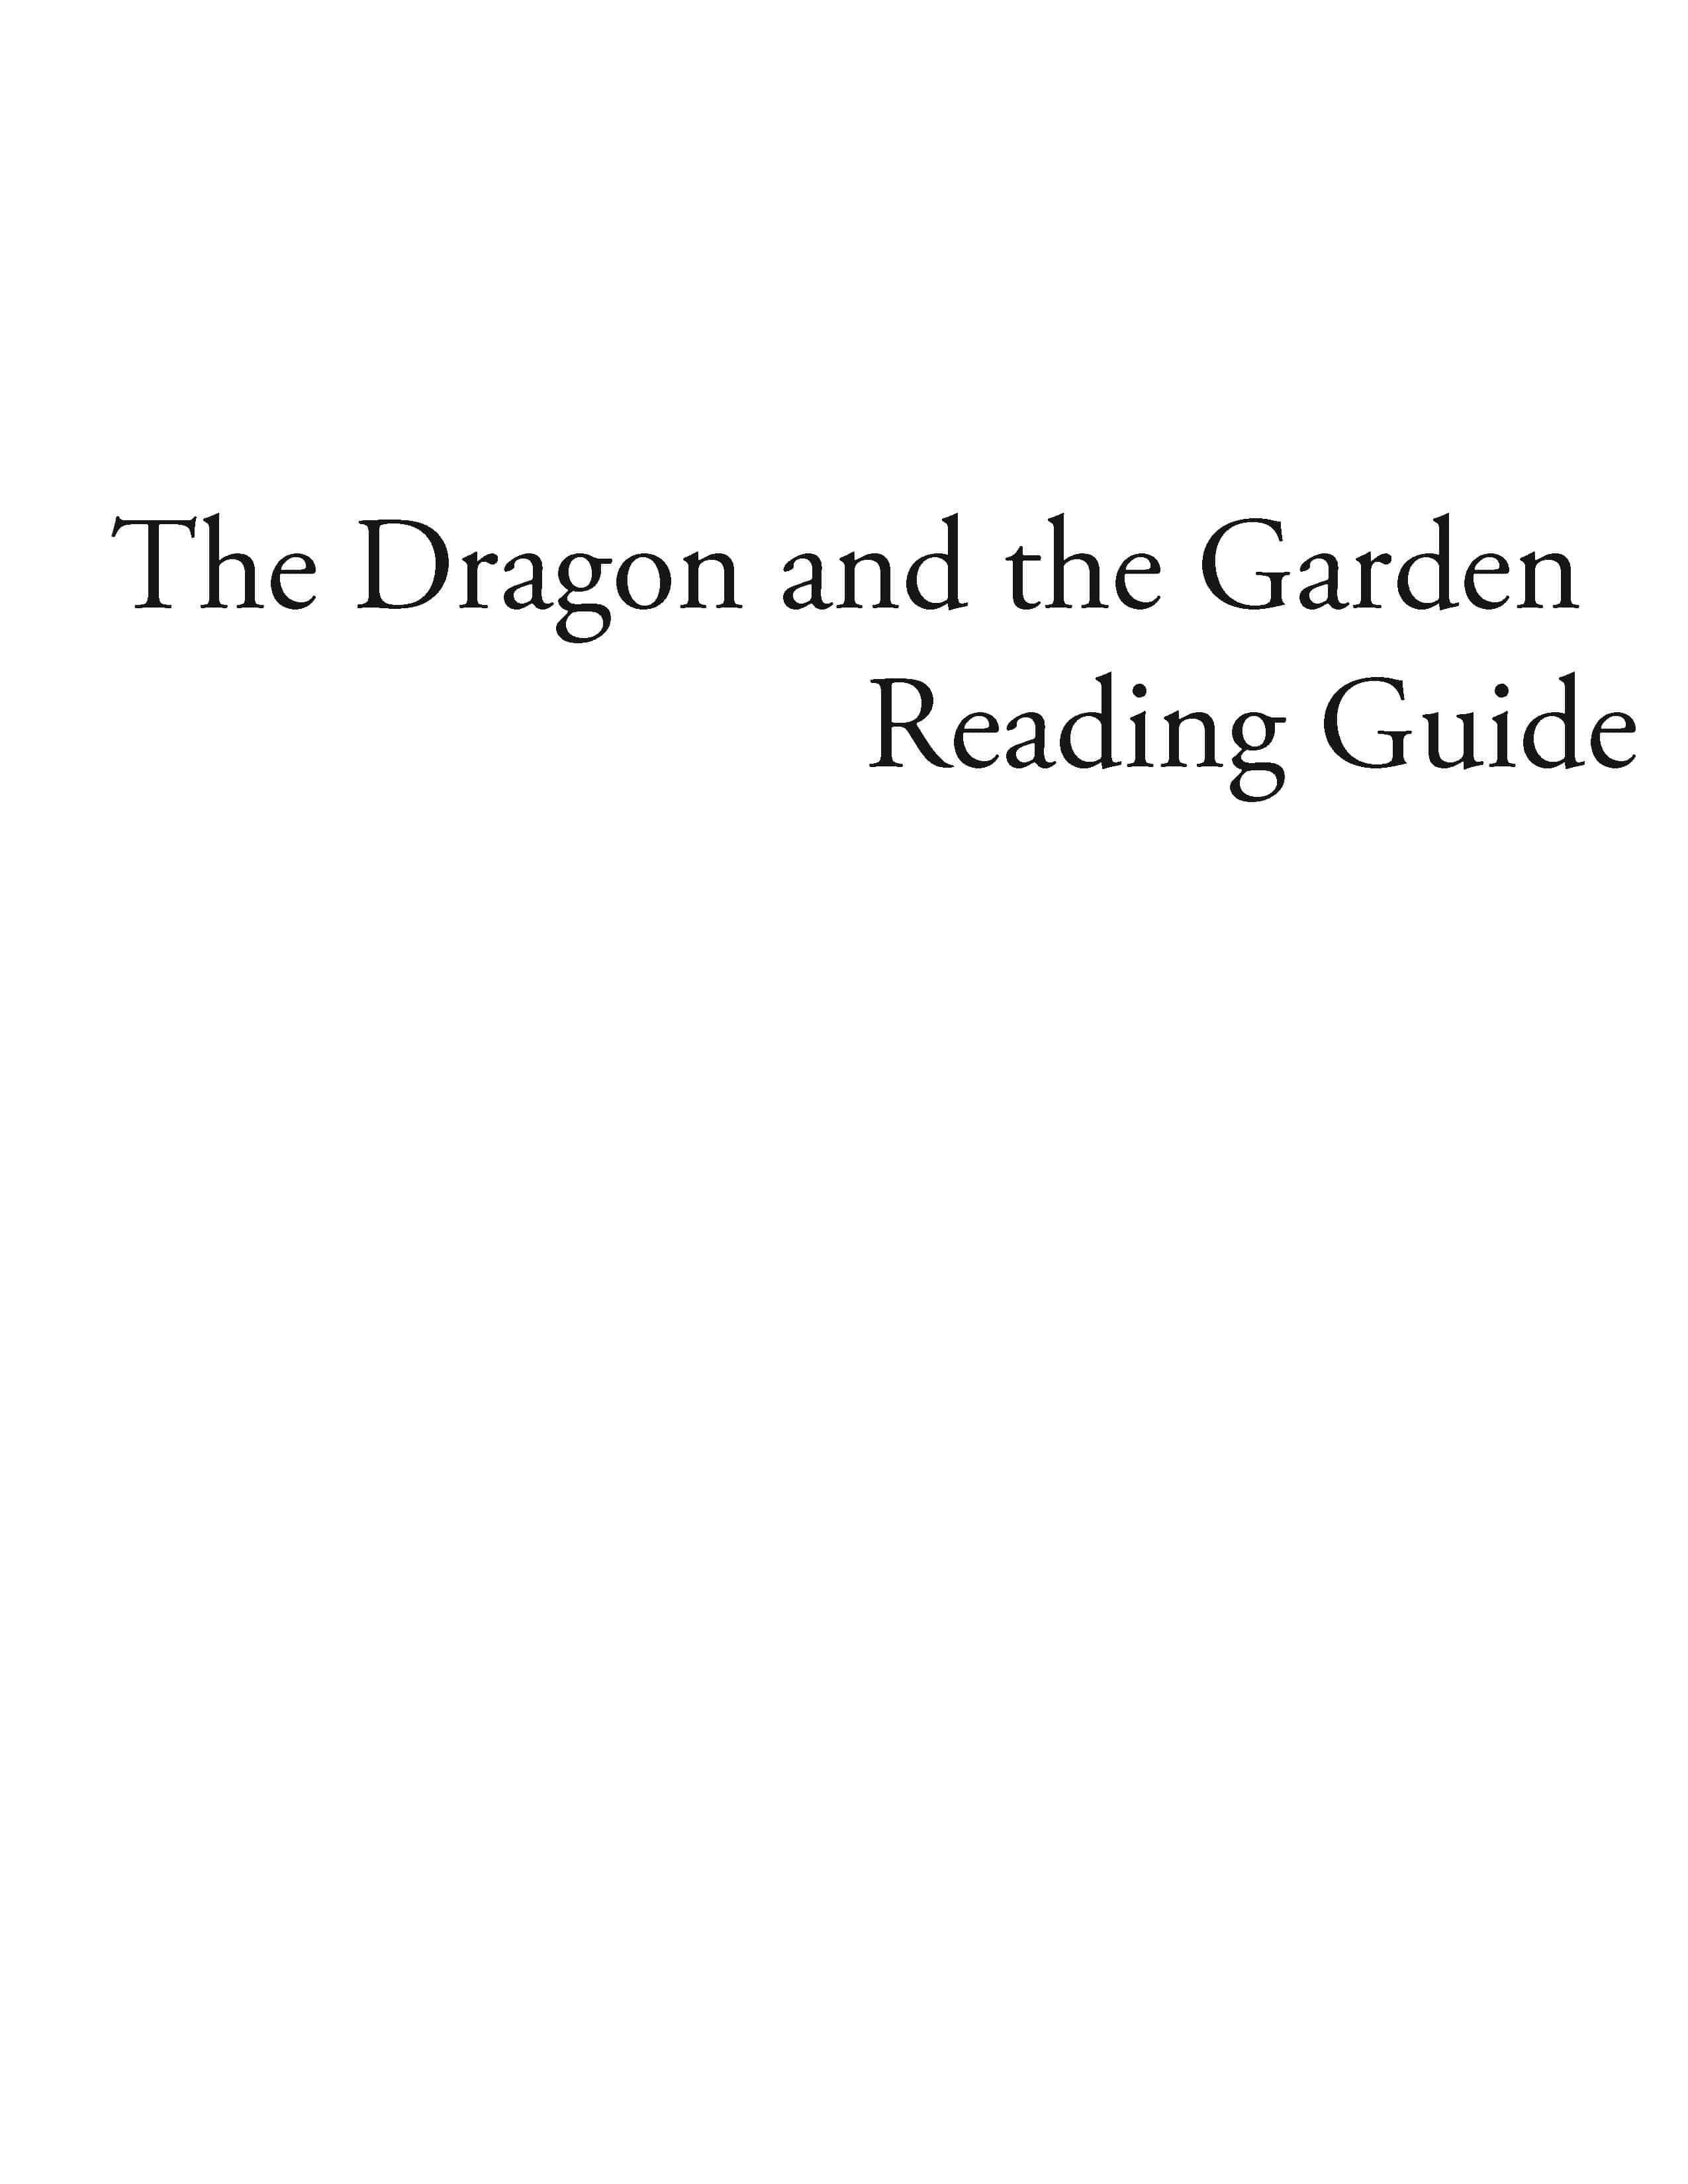 The Dragon in the Garden – Reading Guide (Download)